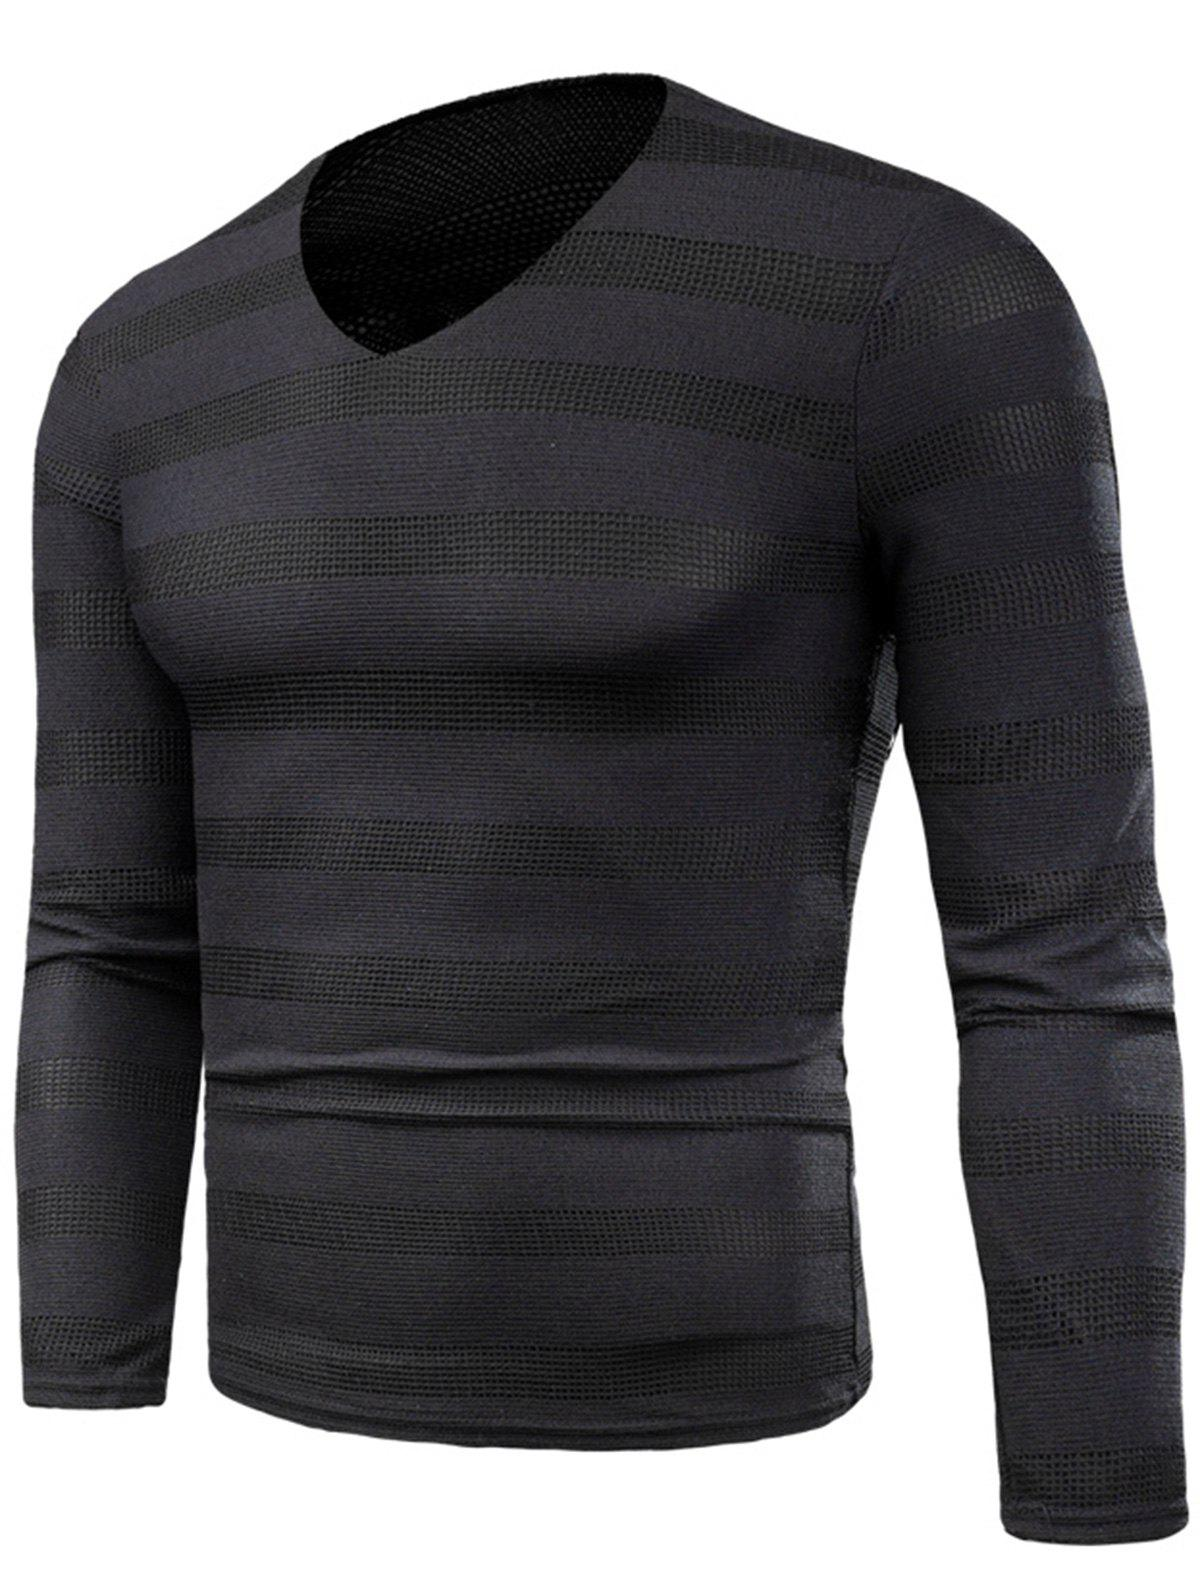 V Neck Long Sleeve Knitted Stripe T-shirt - BLACK 6XL